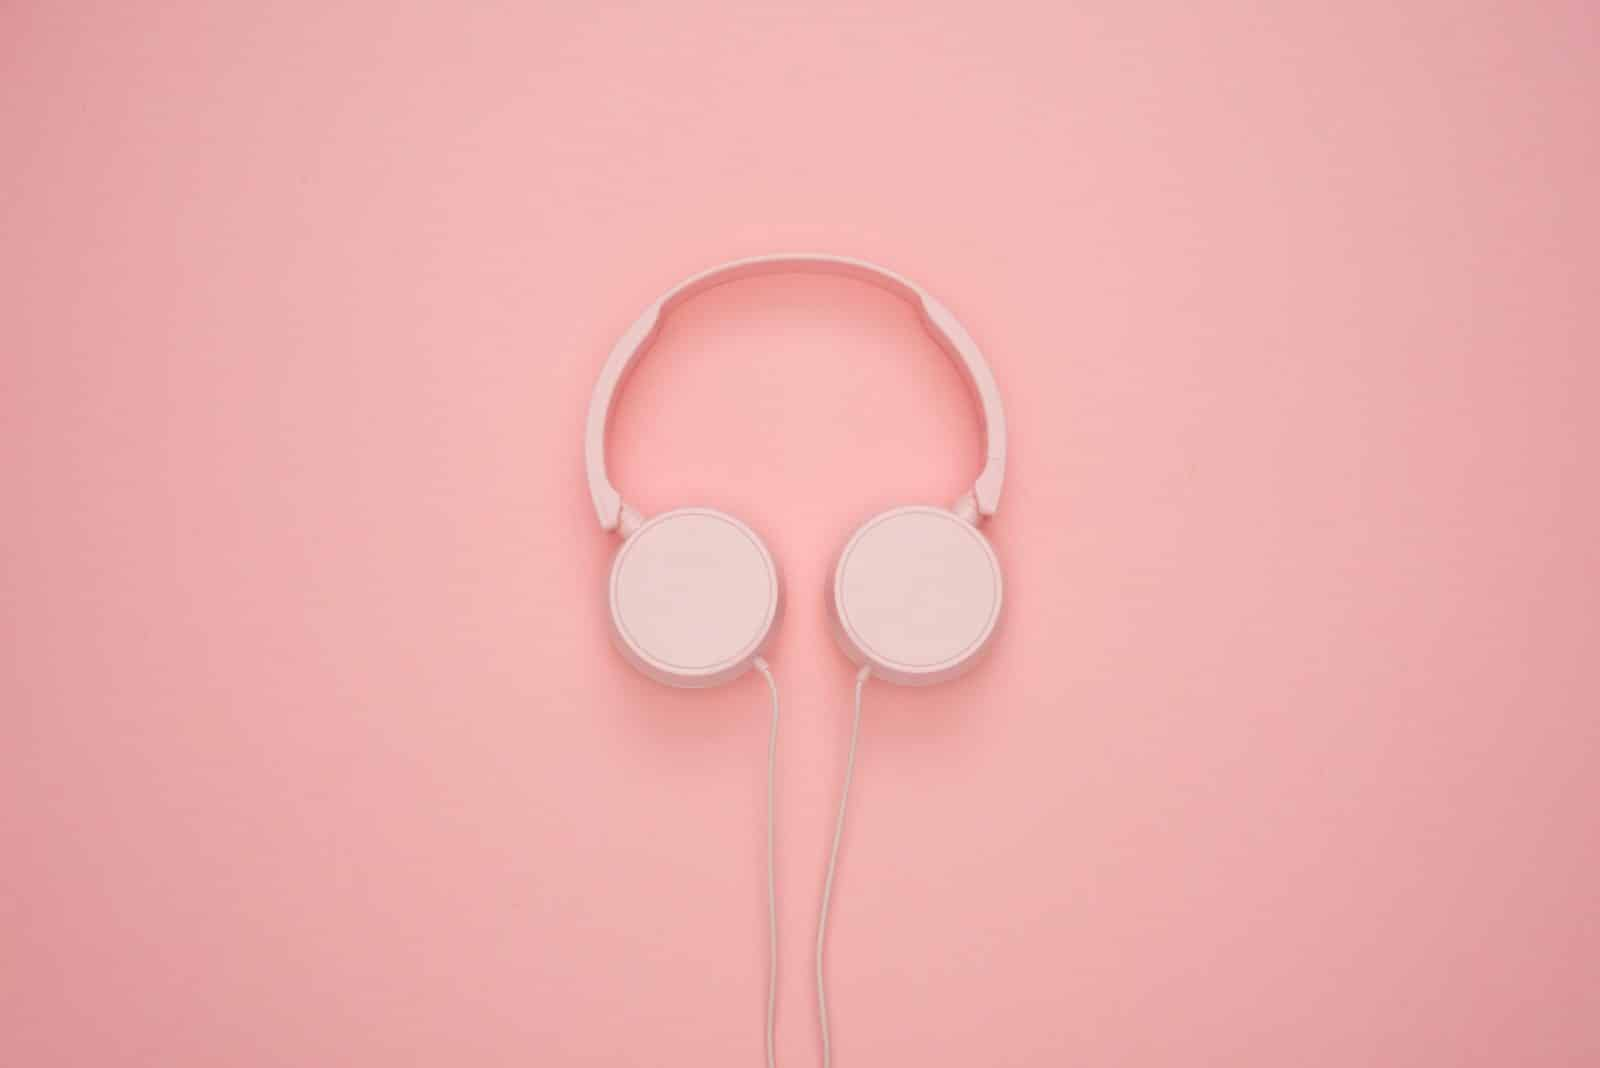 White Headphones On Pastel Pink Background